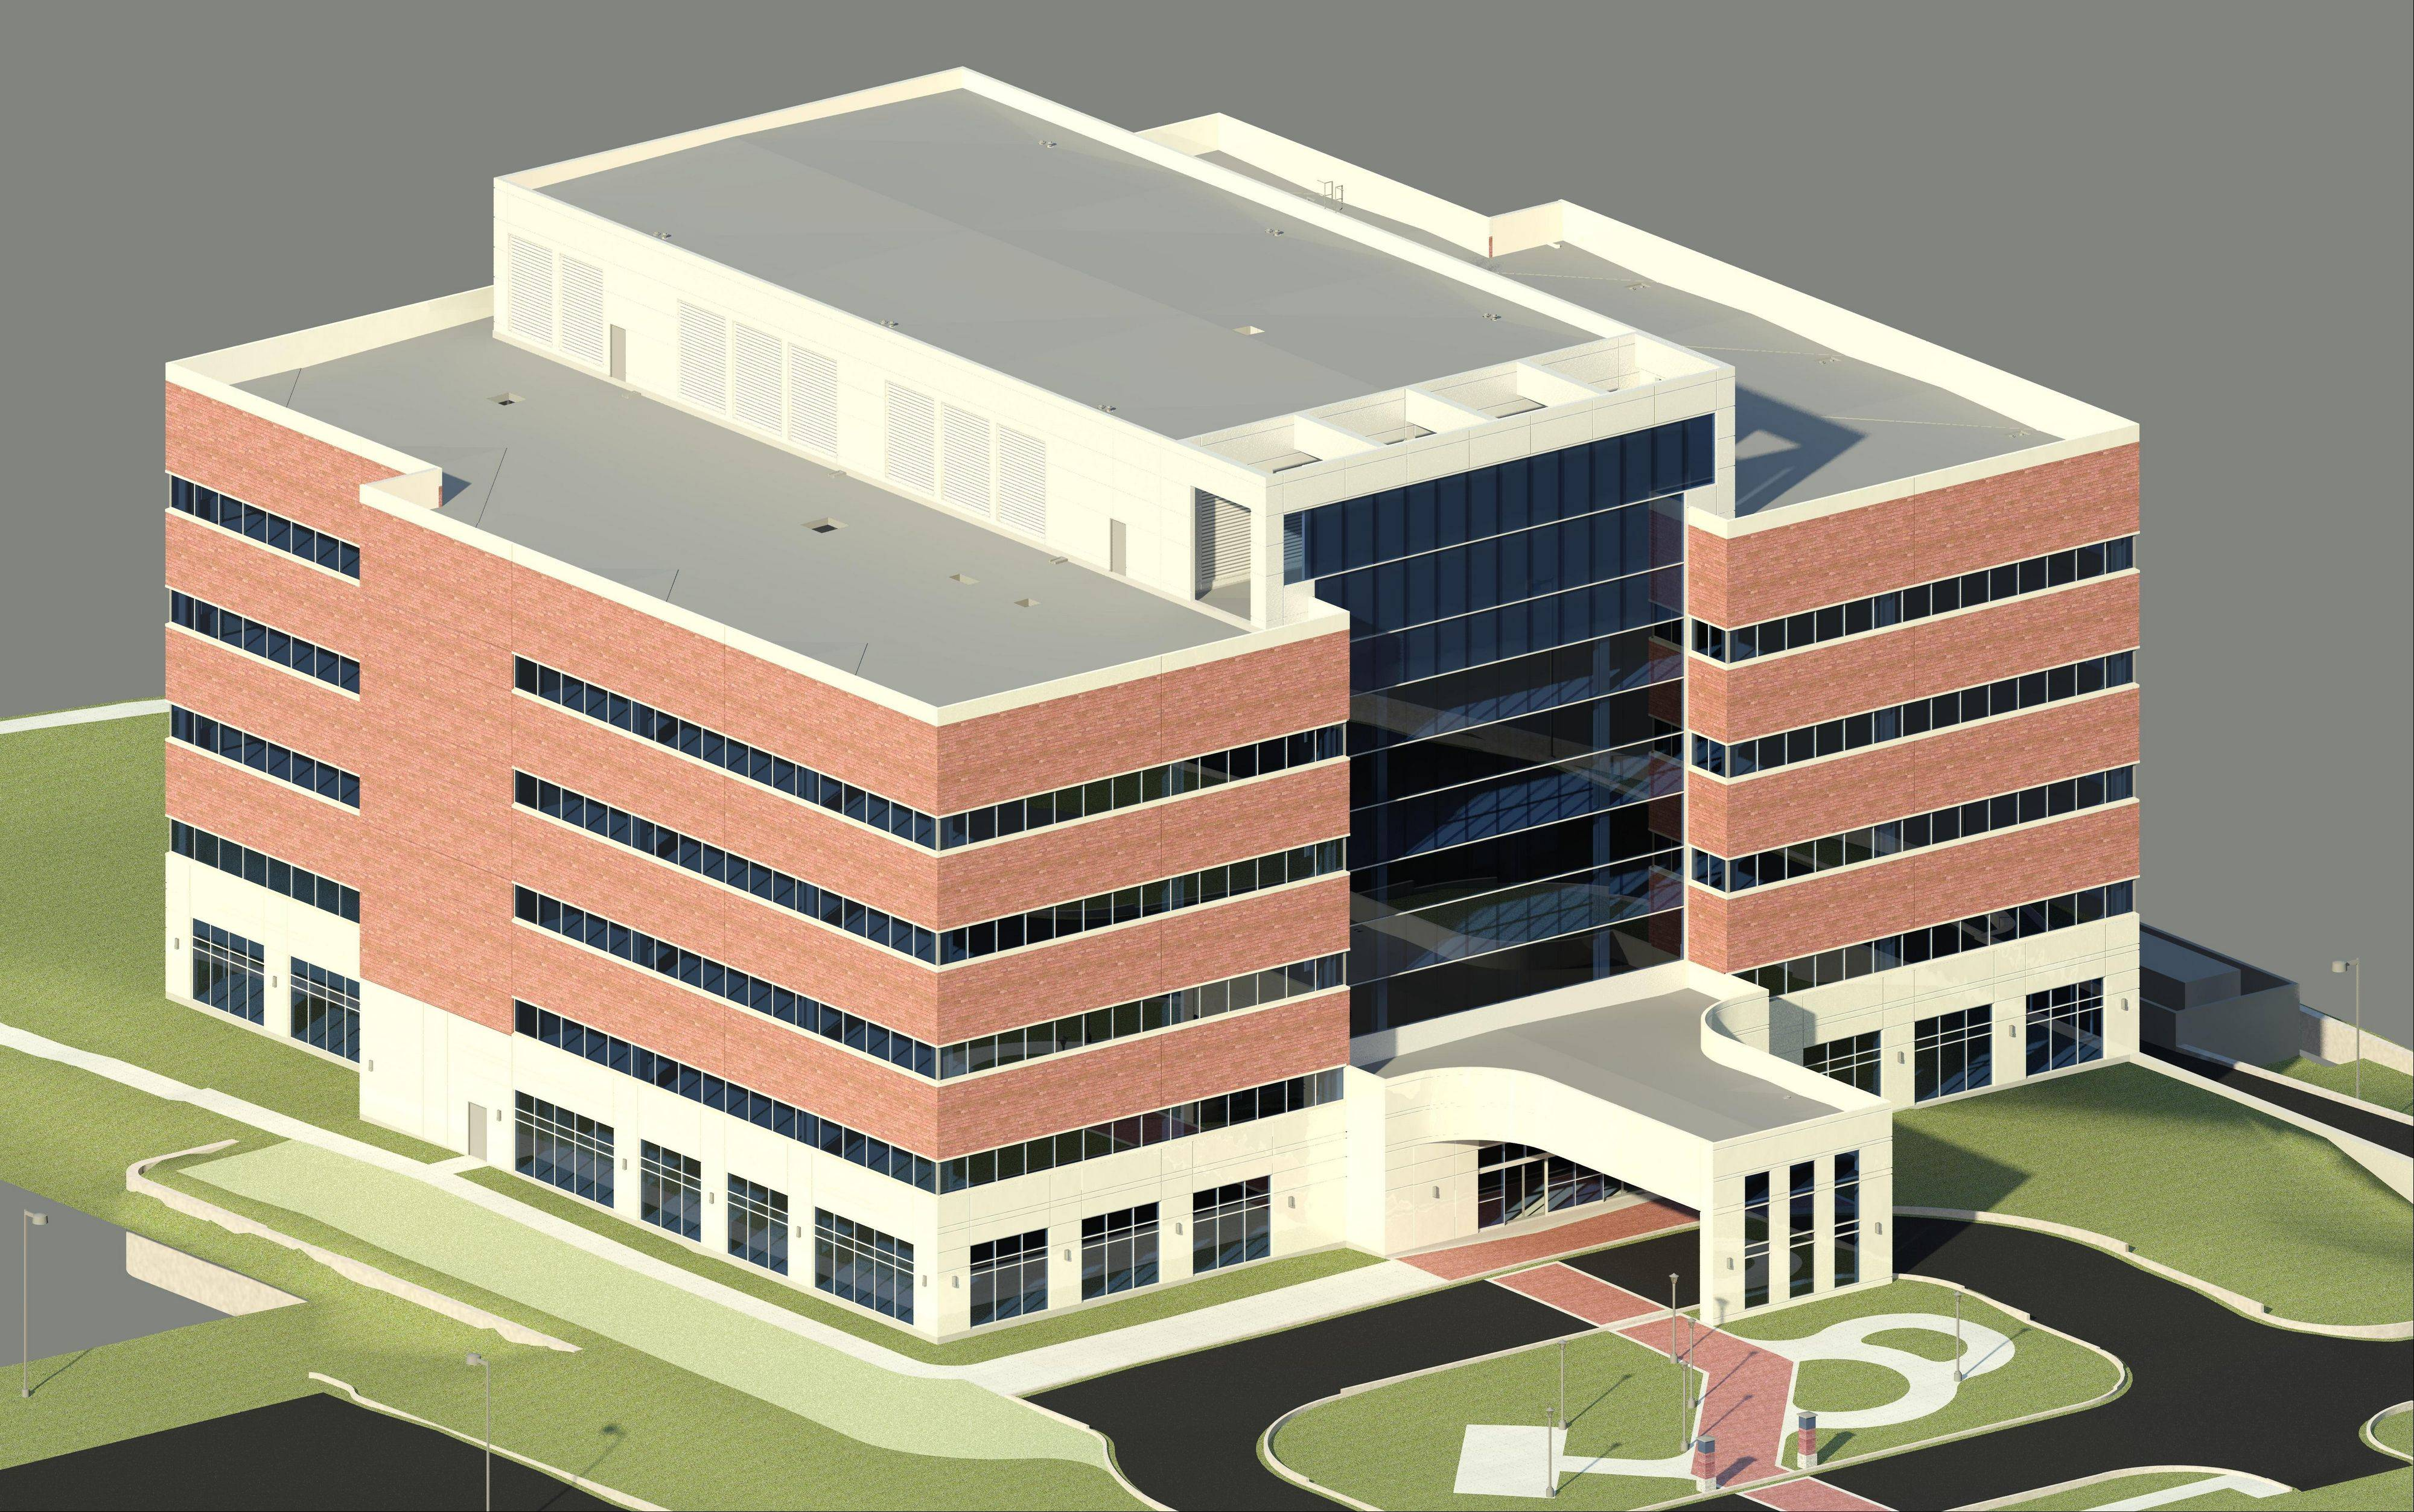 An artist rendering shows the new Midwestern University's dental clinic, which aims to provide low-cost dental services to patients starting in 2013.